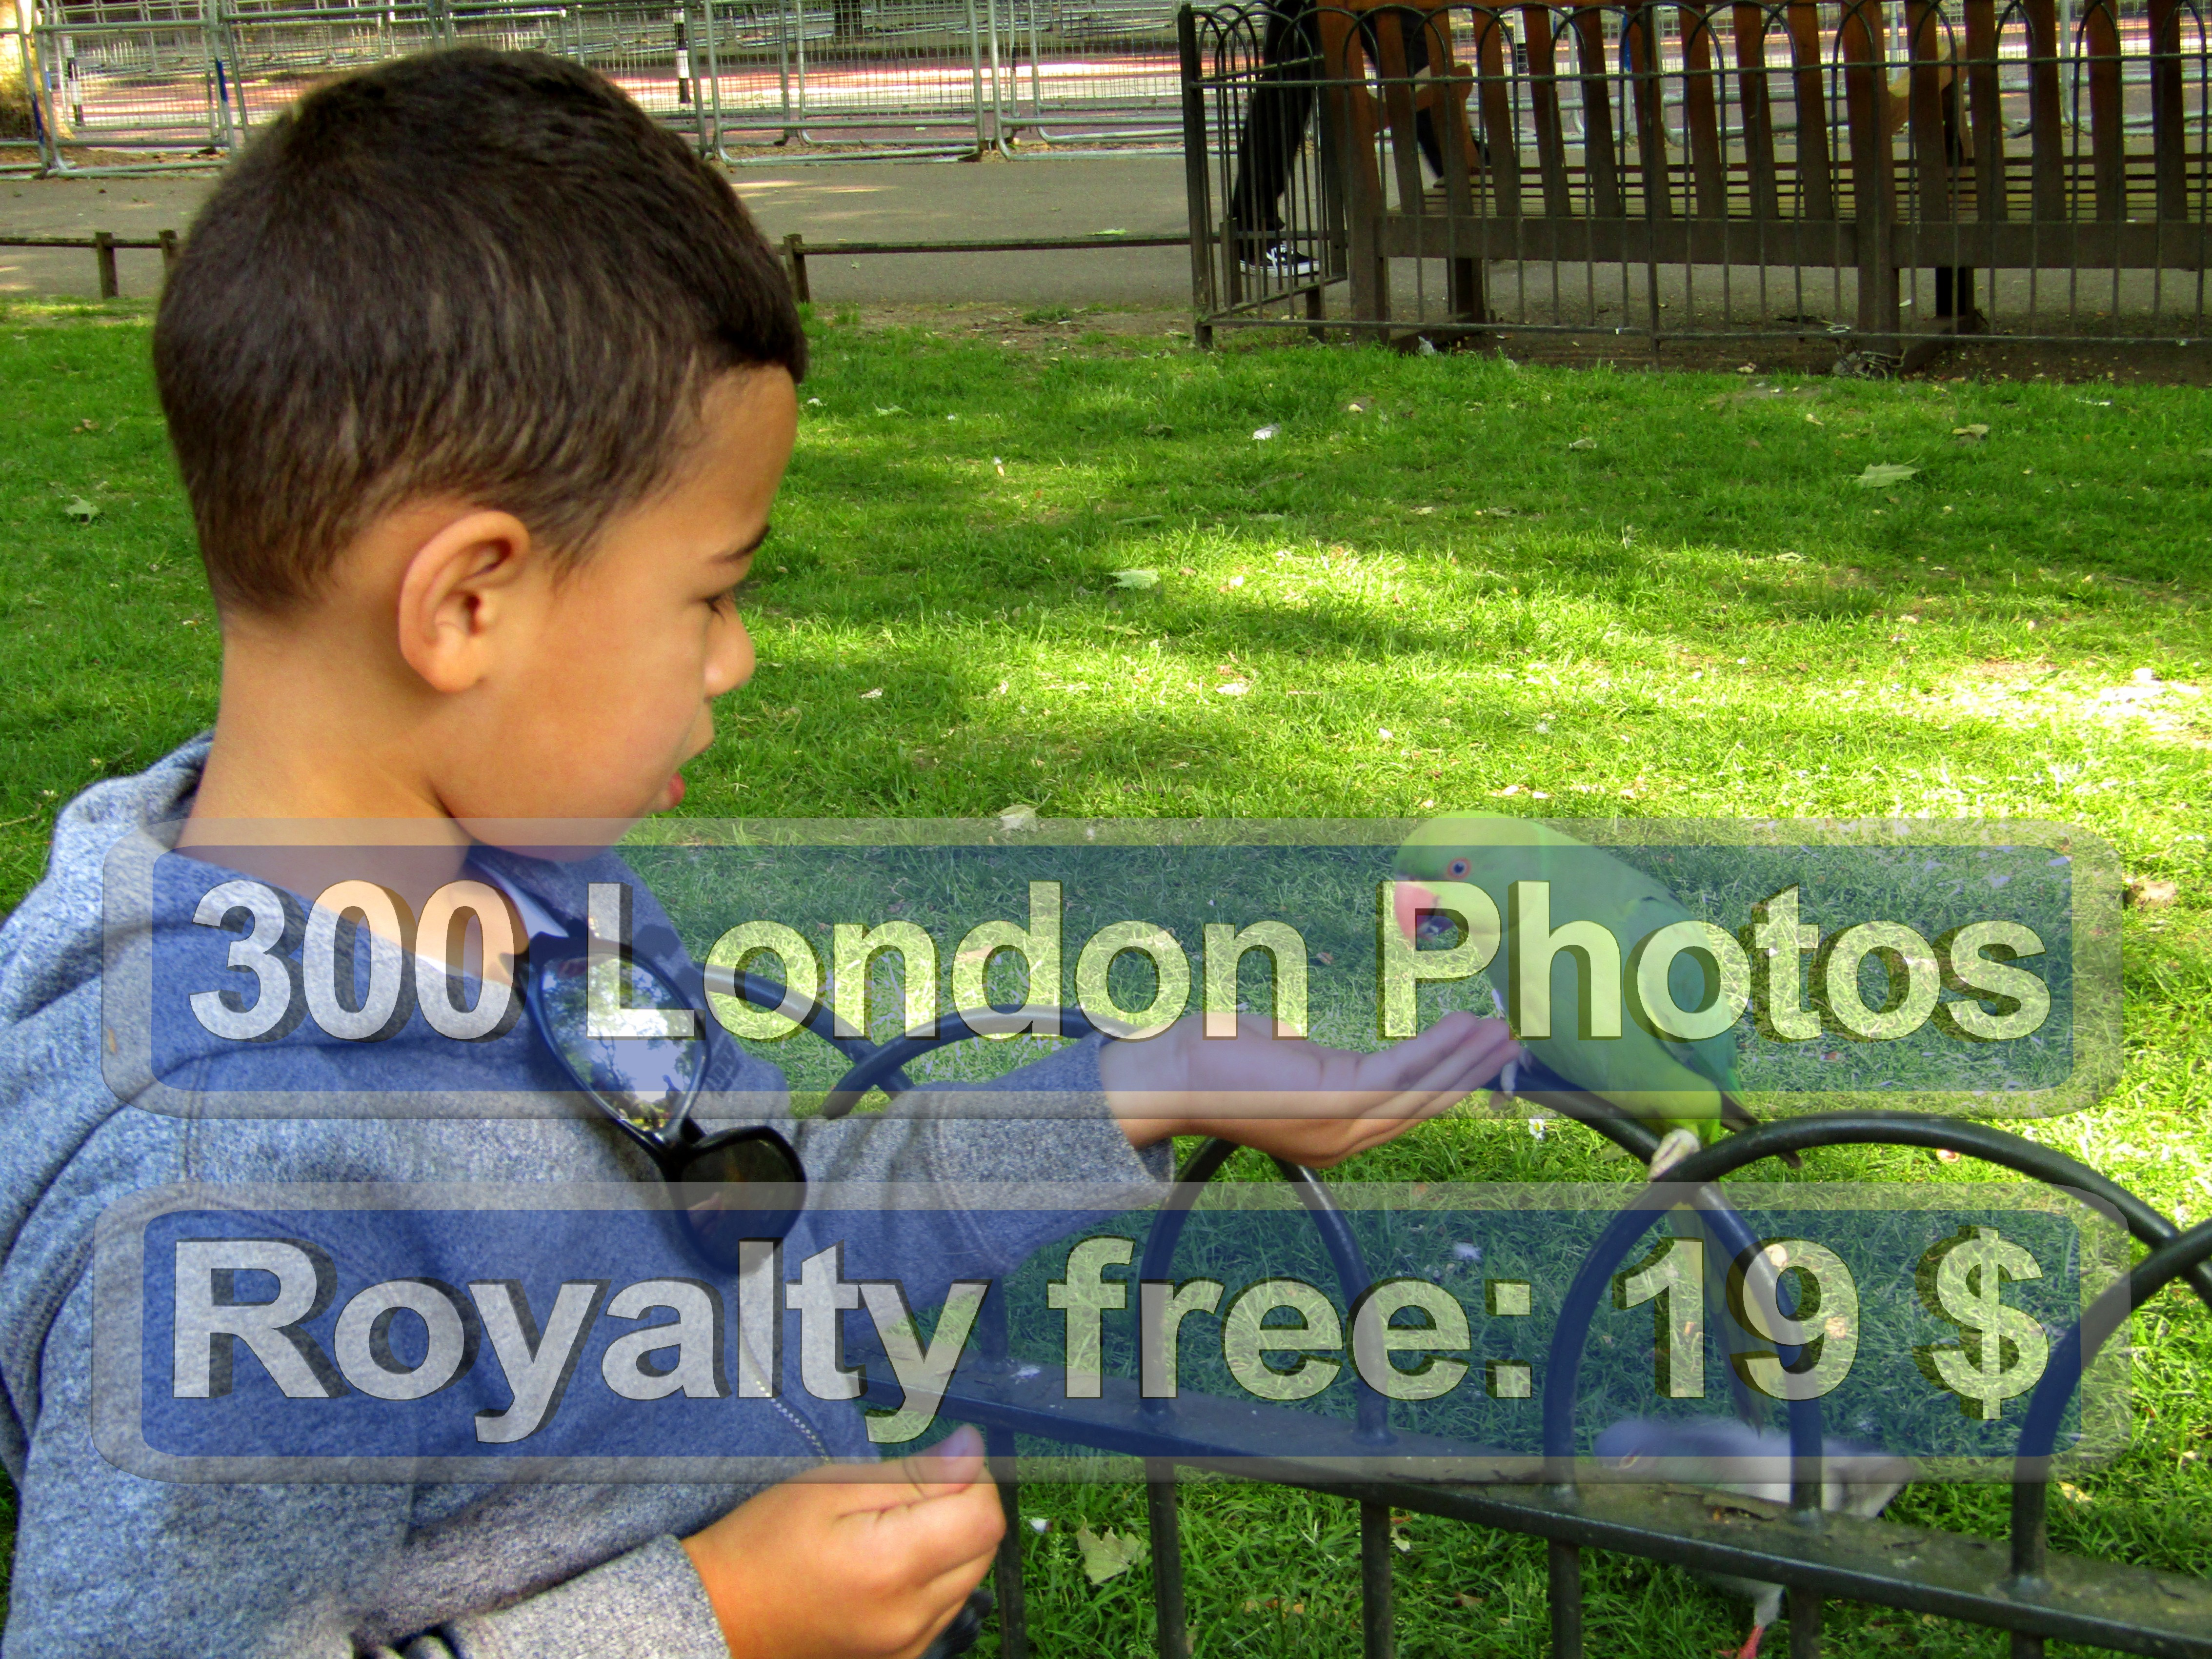 London Drugs Photo Print Quality